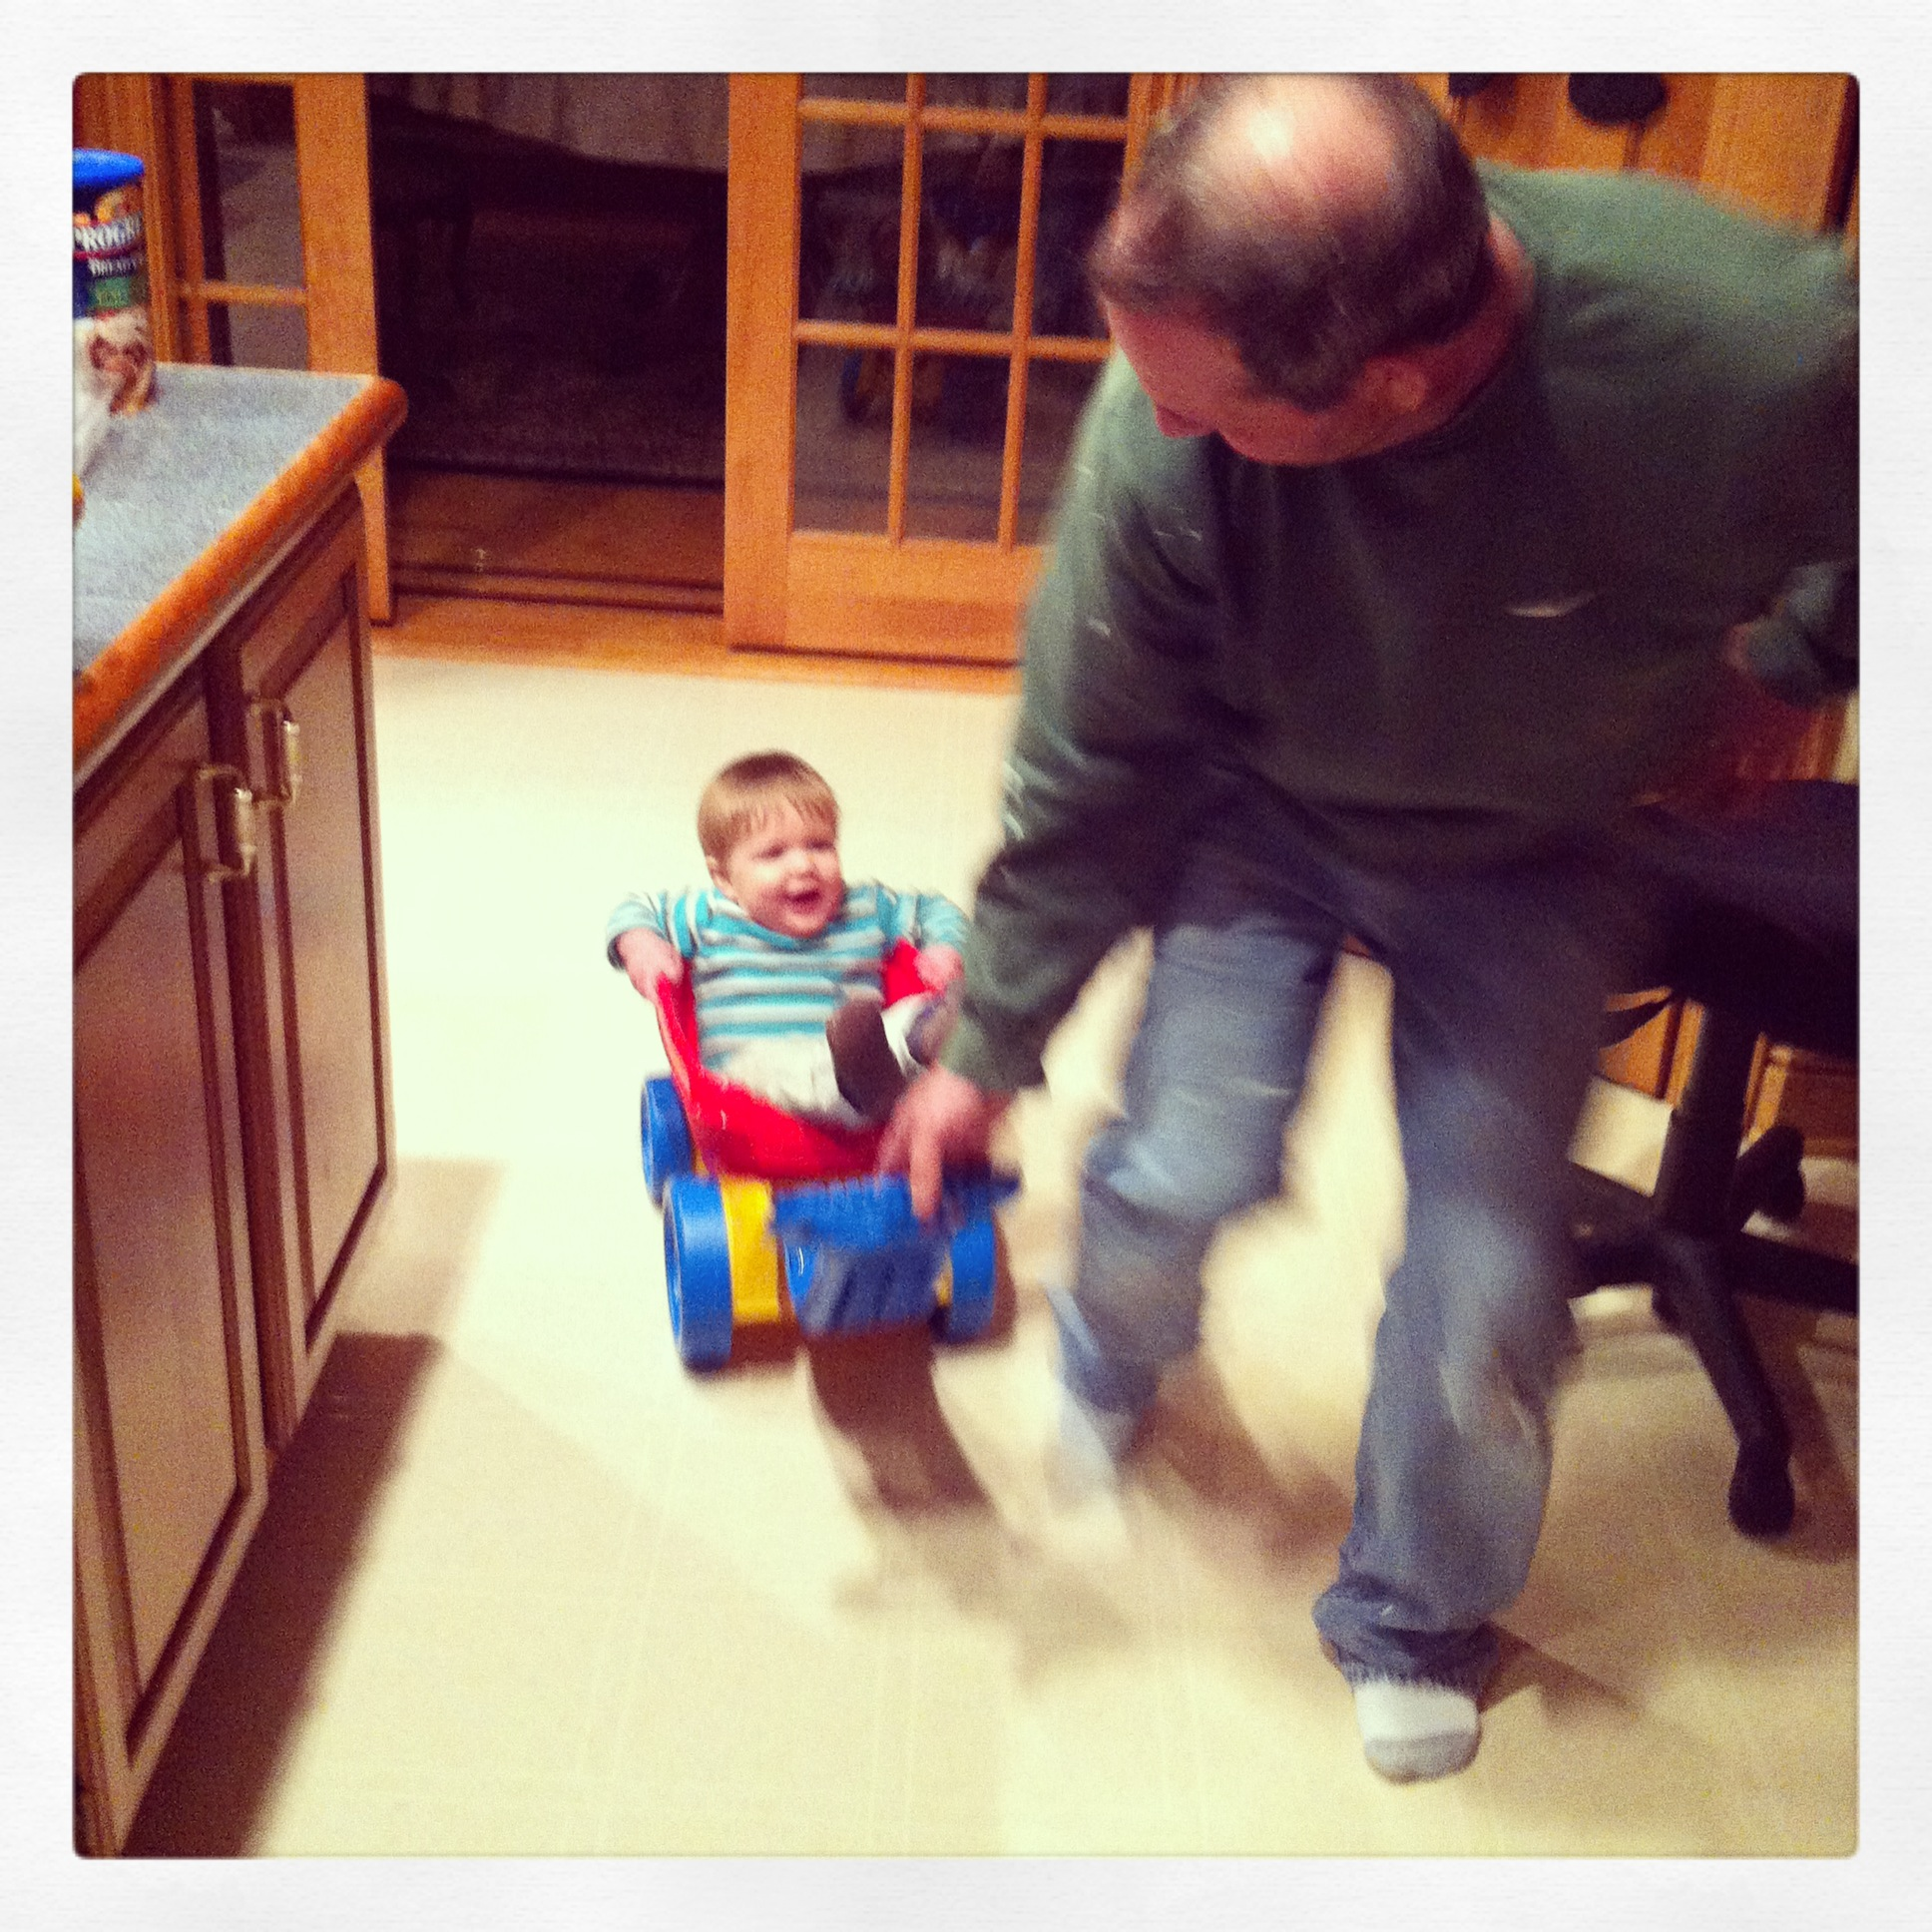 Favorite Grandpa Picture - running around the kitchen laughing at each other.